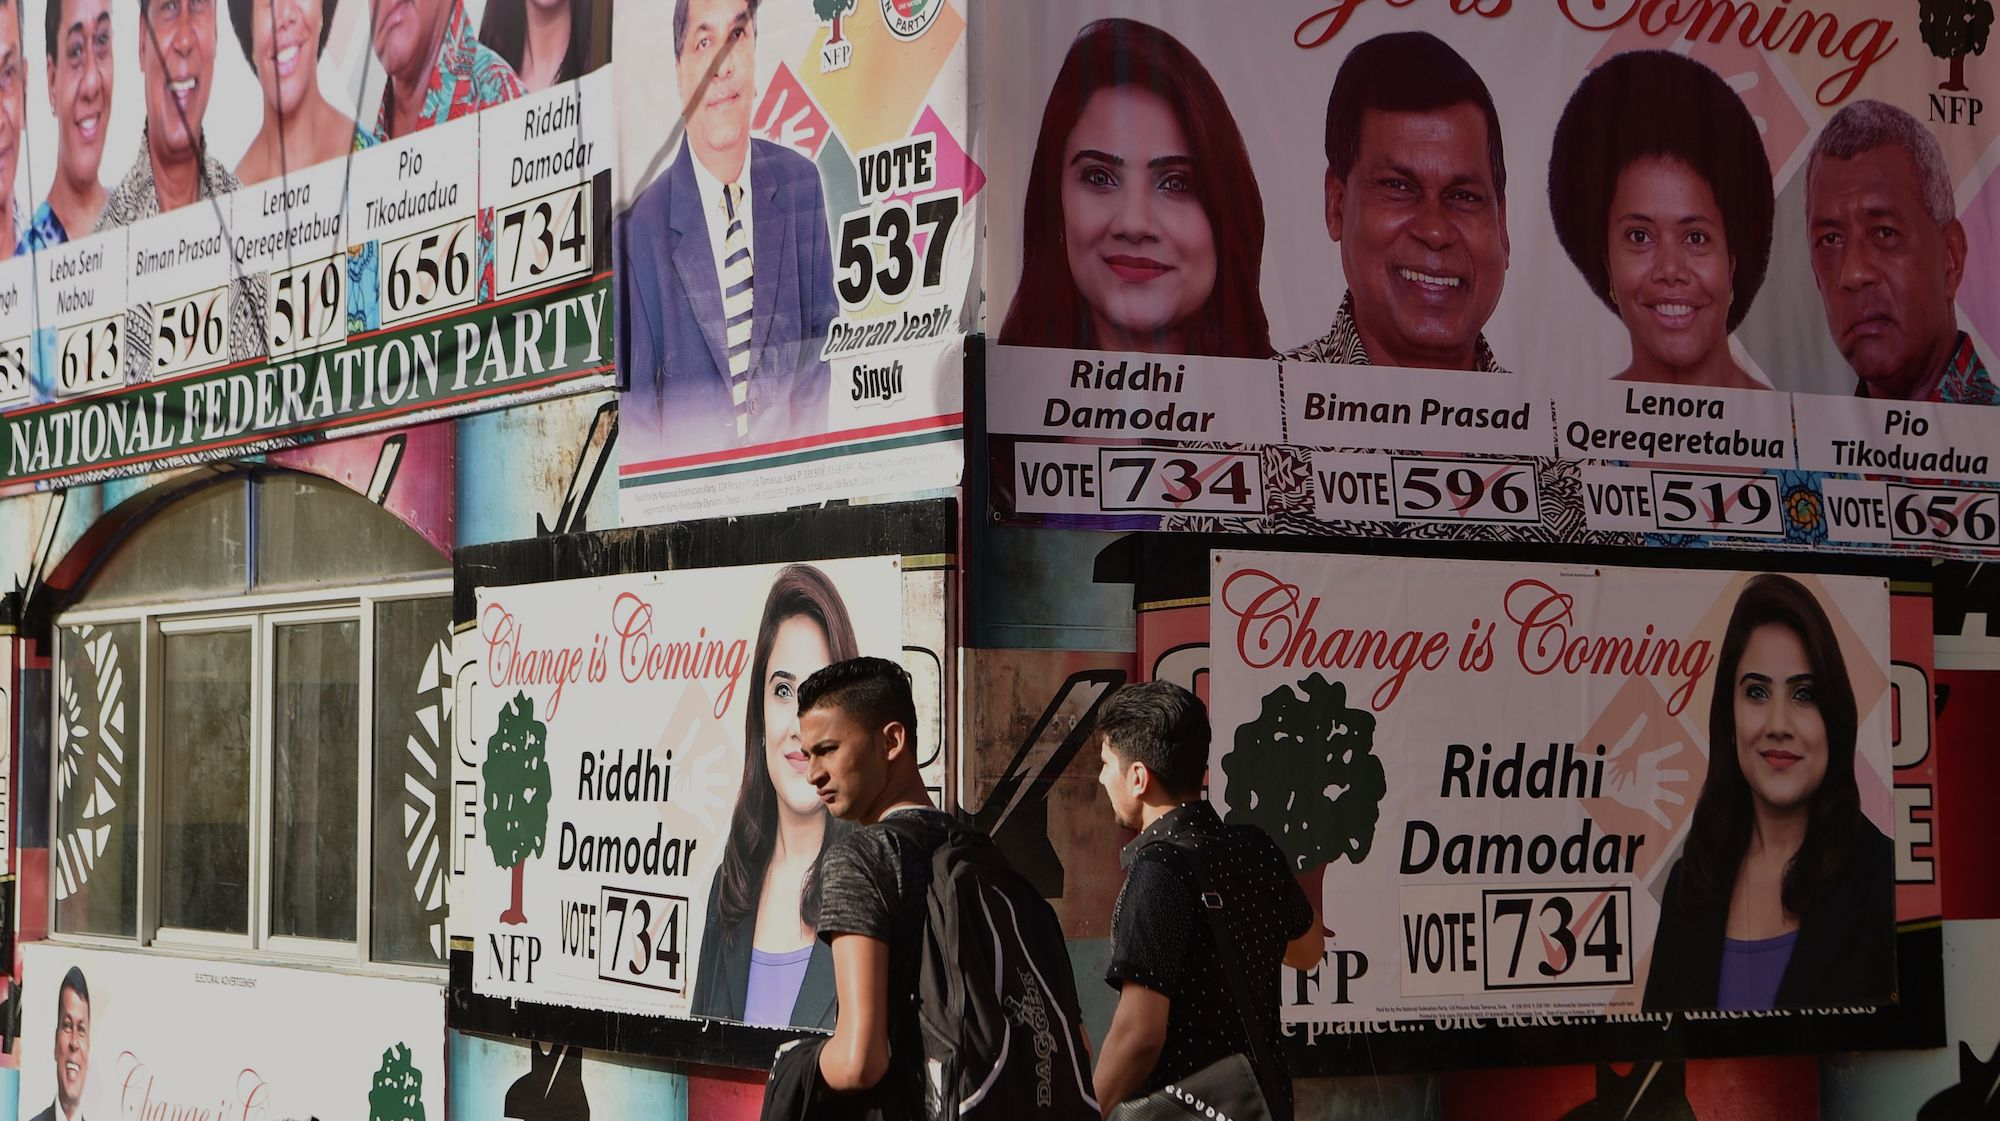 Election posters in the Fijian capital of Suva (Photo: Peter Parks via Getty)